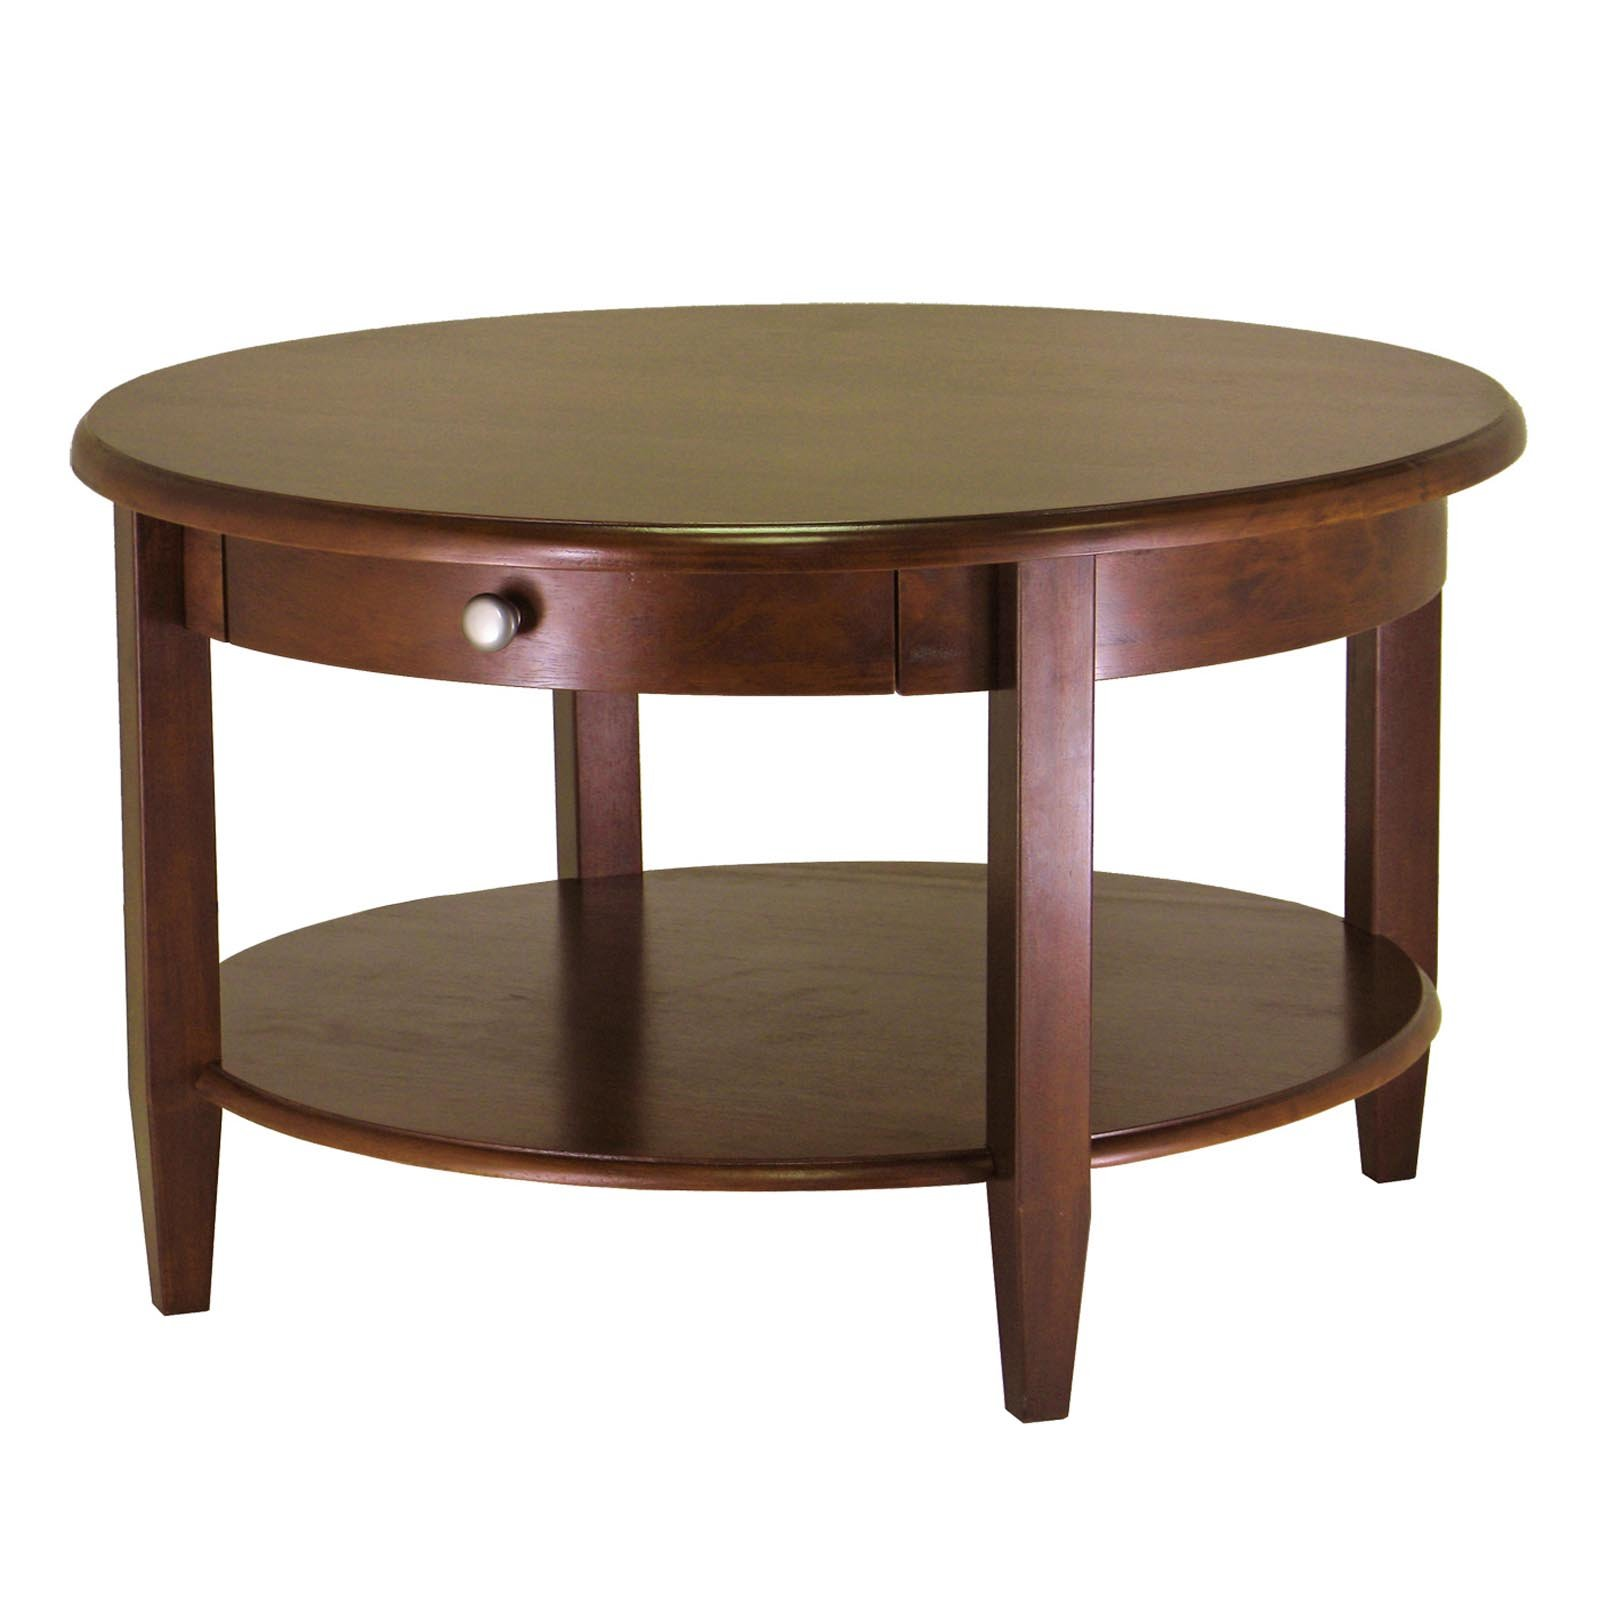 Ideas With Round Coffee Table Brown Living Room (View 4 of 9)